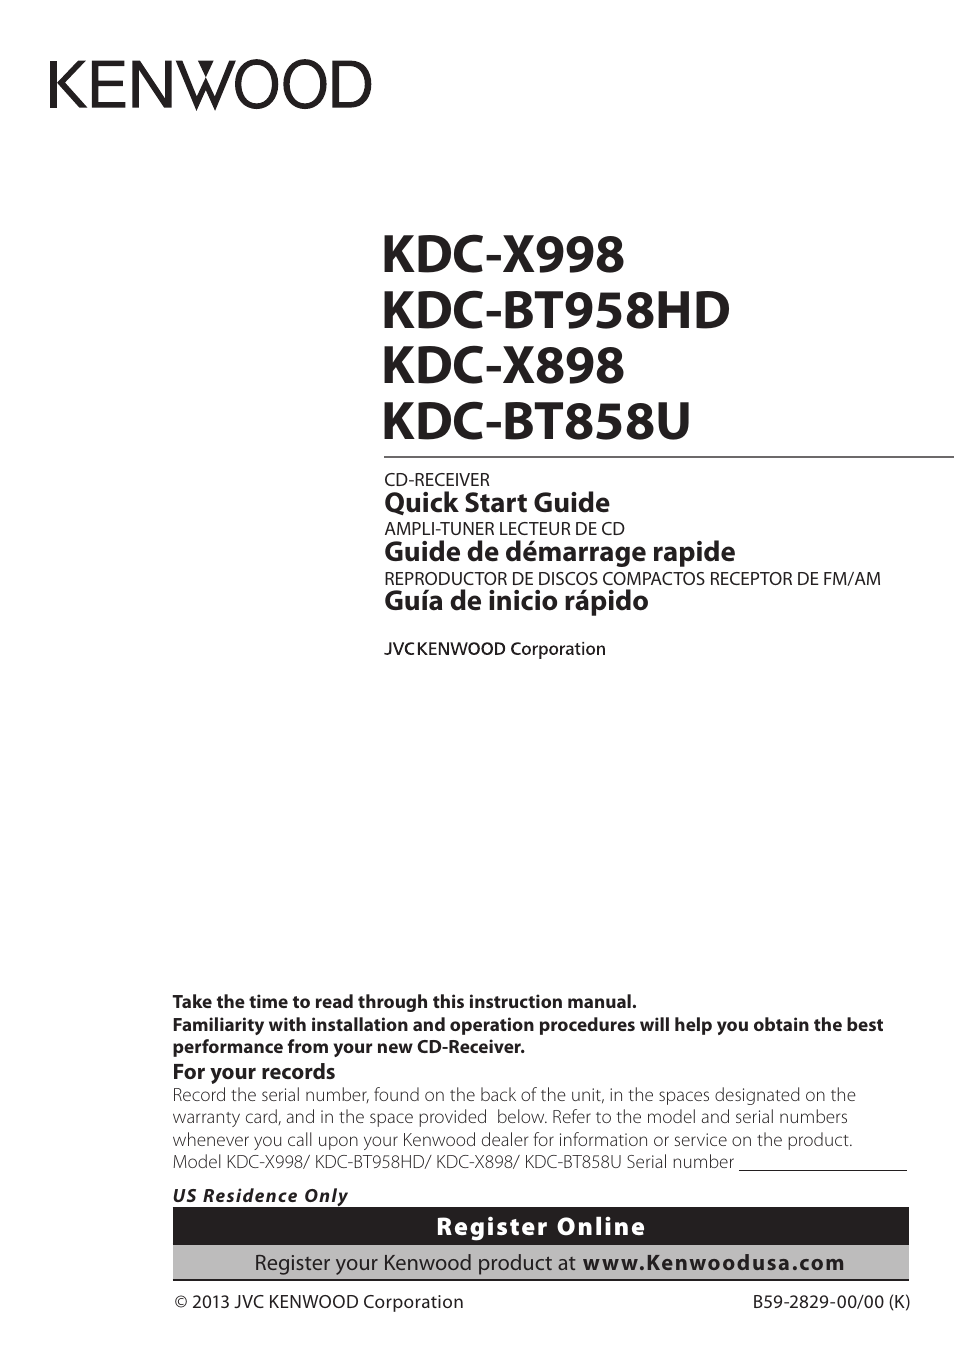 kenwood kdc x898 page1 kenwood kdc x898 user manual 48 pages also for kdc x998 kenwood excelon kdc-x997 wiring diagram at crackthecode.co